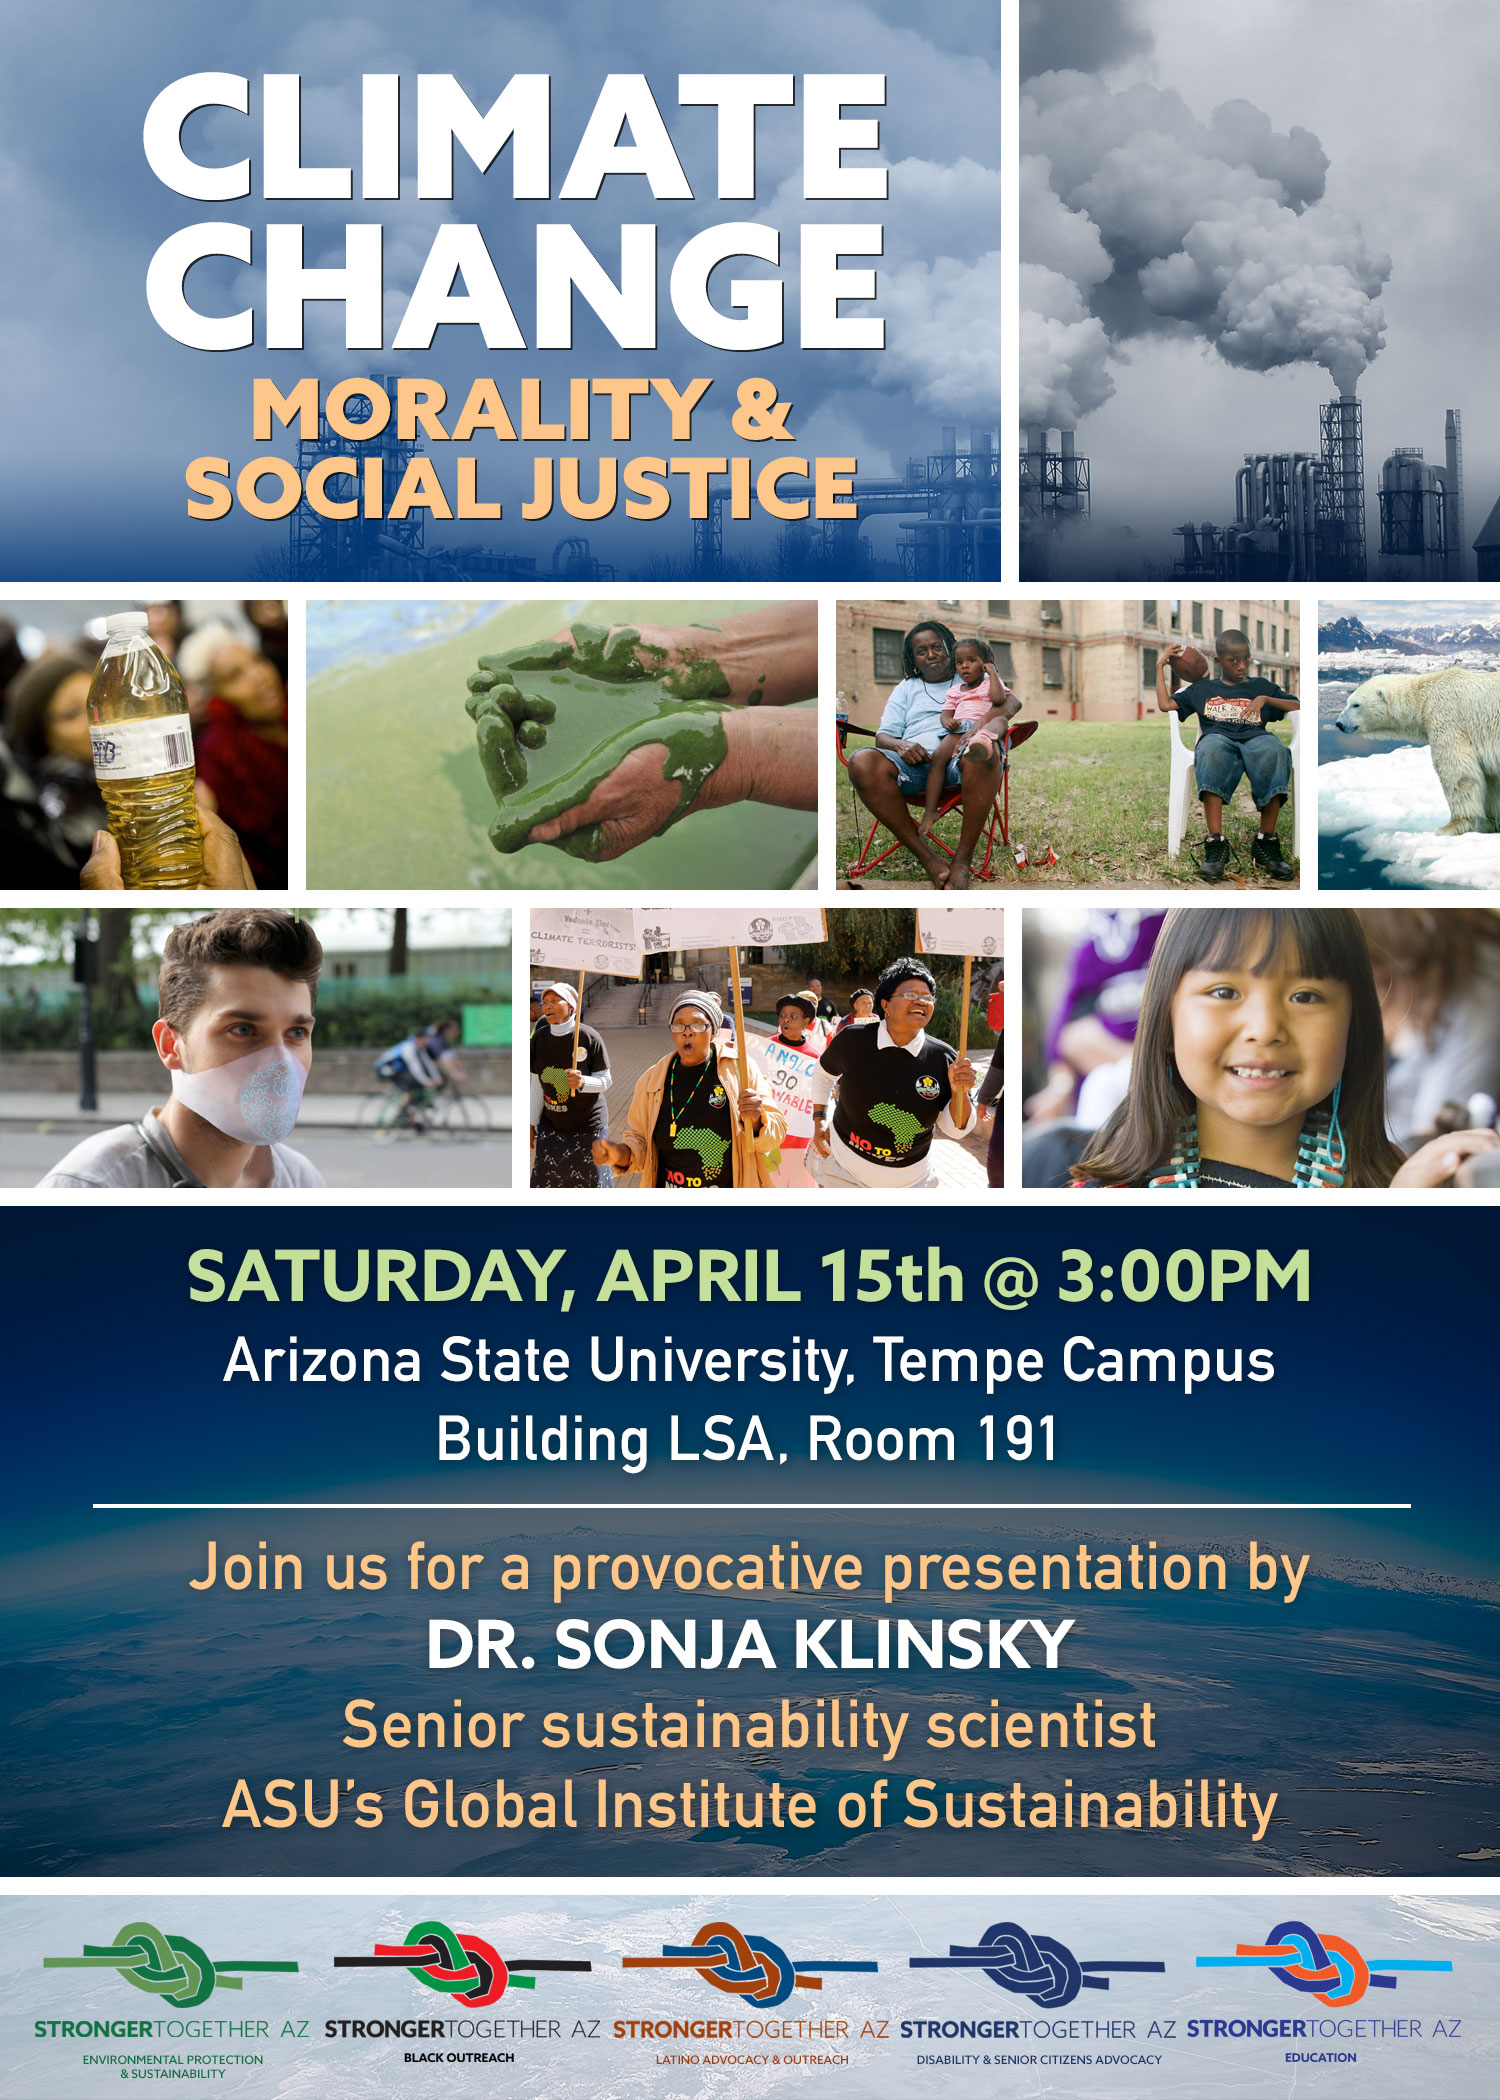 morality and event How does our understanding of the concepts of life and death affect our moral sensibility, decisions, and actions this symposium engages scientific and humanistic focus upon the ways in.